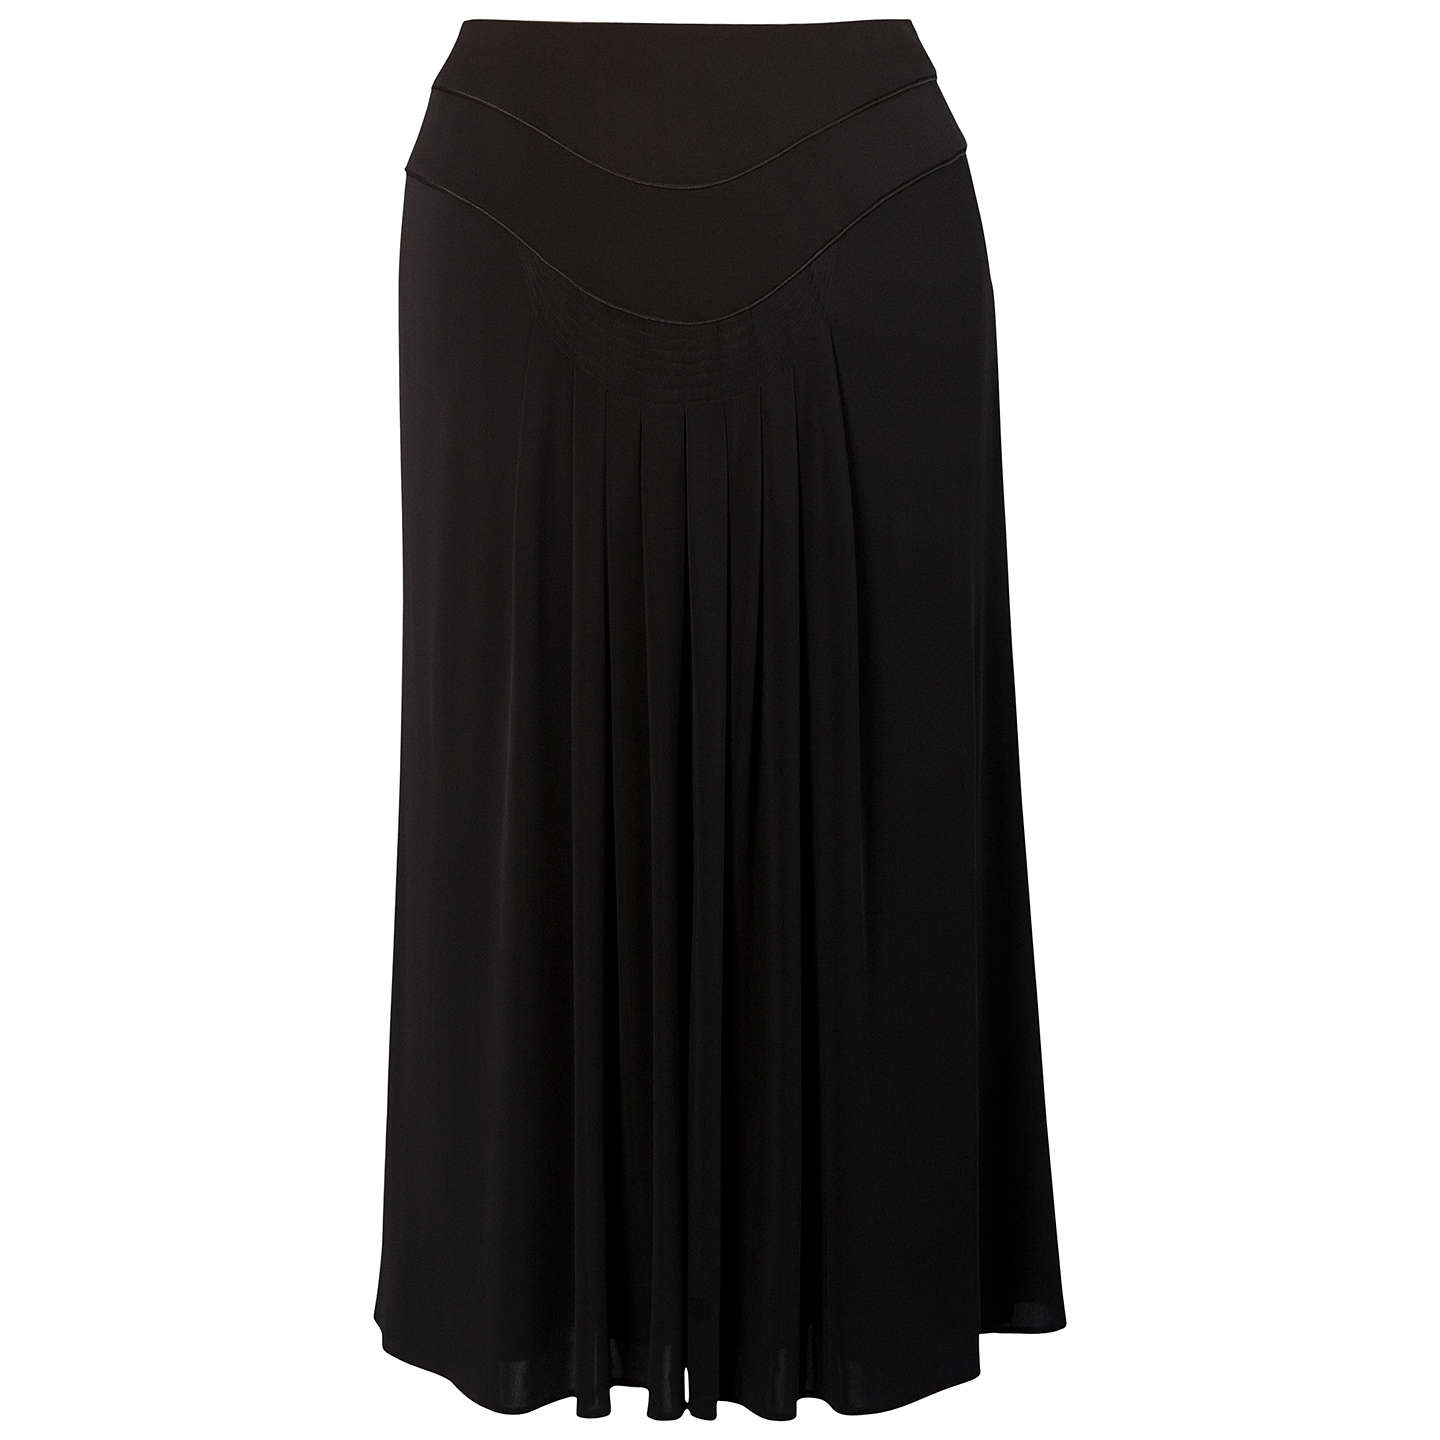 BuyChesca Piping Trim Tuck Detail Jersey Skirt, Black, 12 Online at johnlewis.com